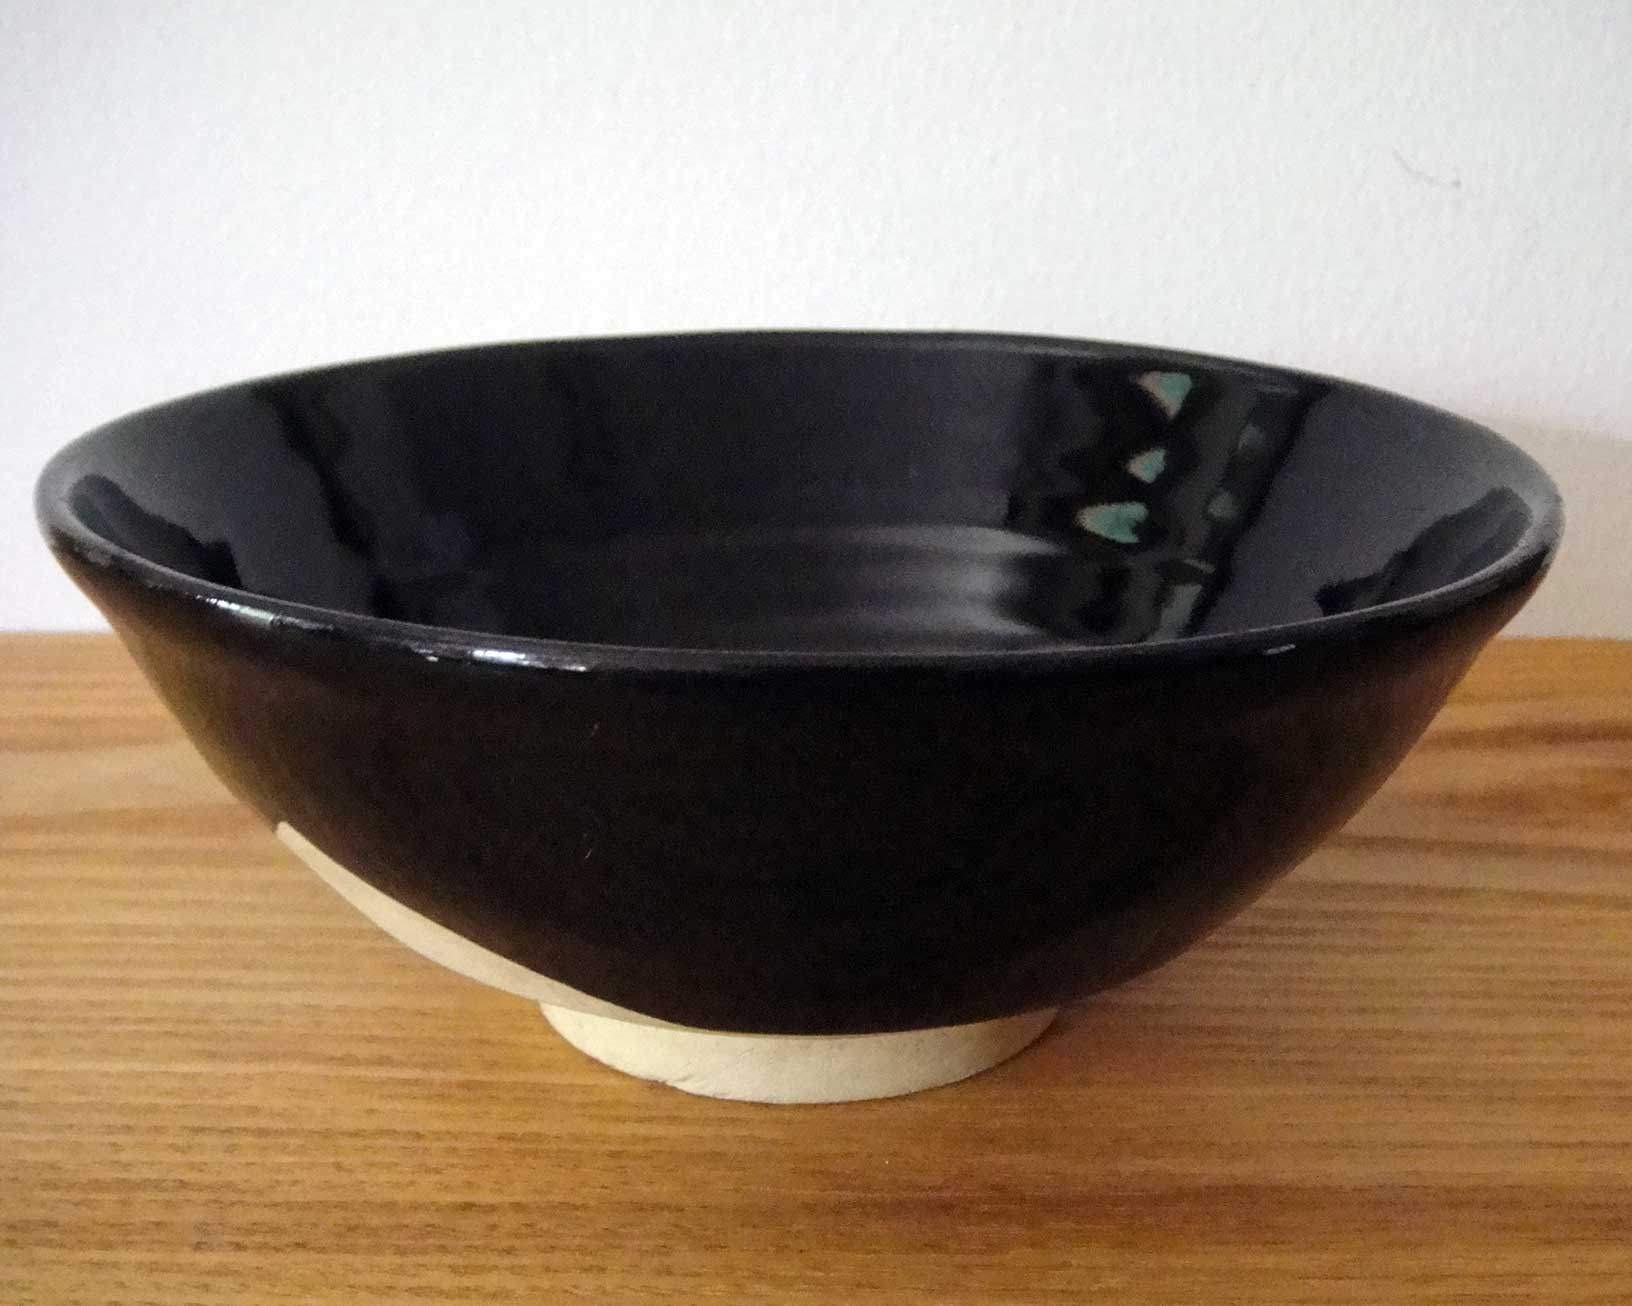 Black-glazed bowl, made in Tajimi, sold at Nagano station, 1967. Collection of Louise Cort.